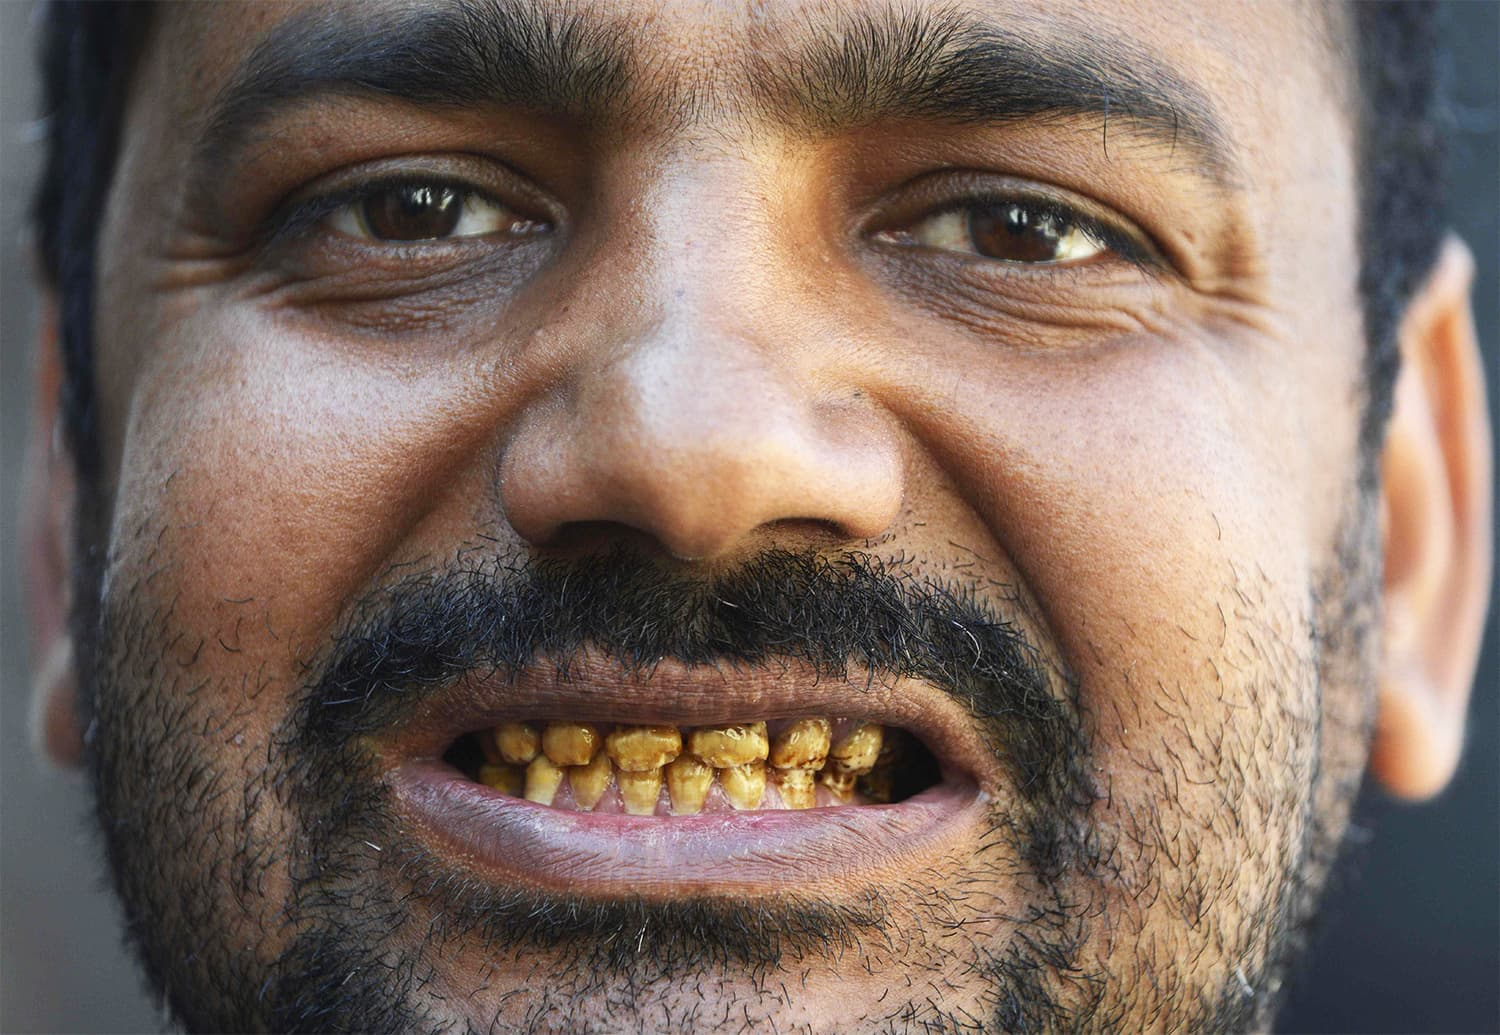 In this picture taken on February 25, 2018, Naveed shows his teeth rotting allegedly due to environmental factors and polluted groundwater in Kot Assadullah. ─ AFP